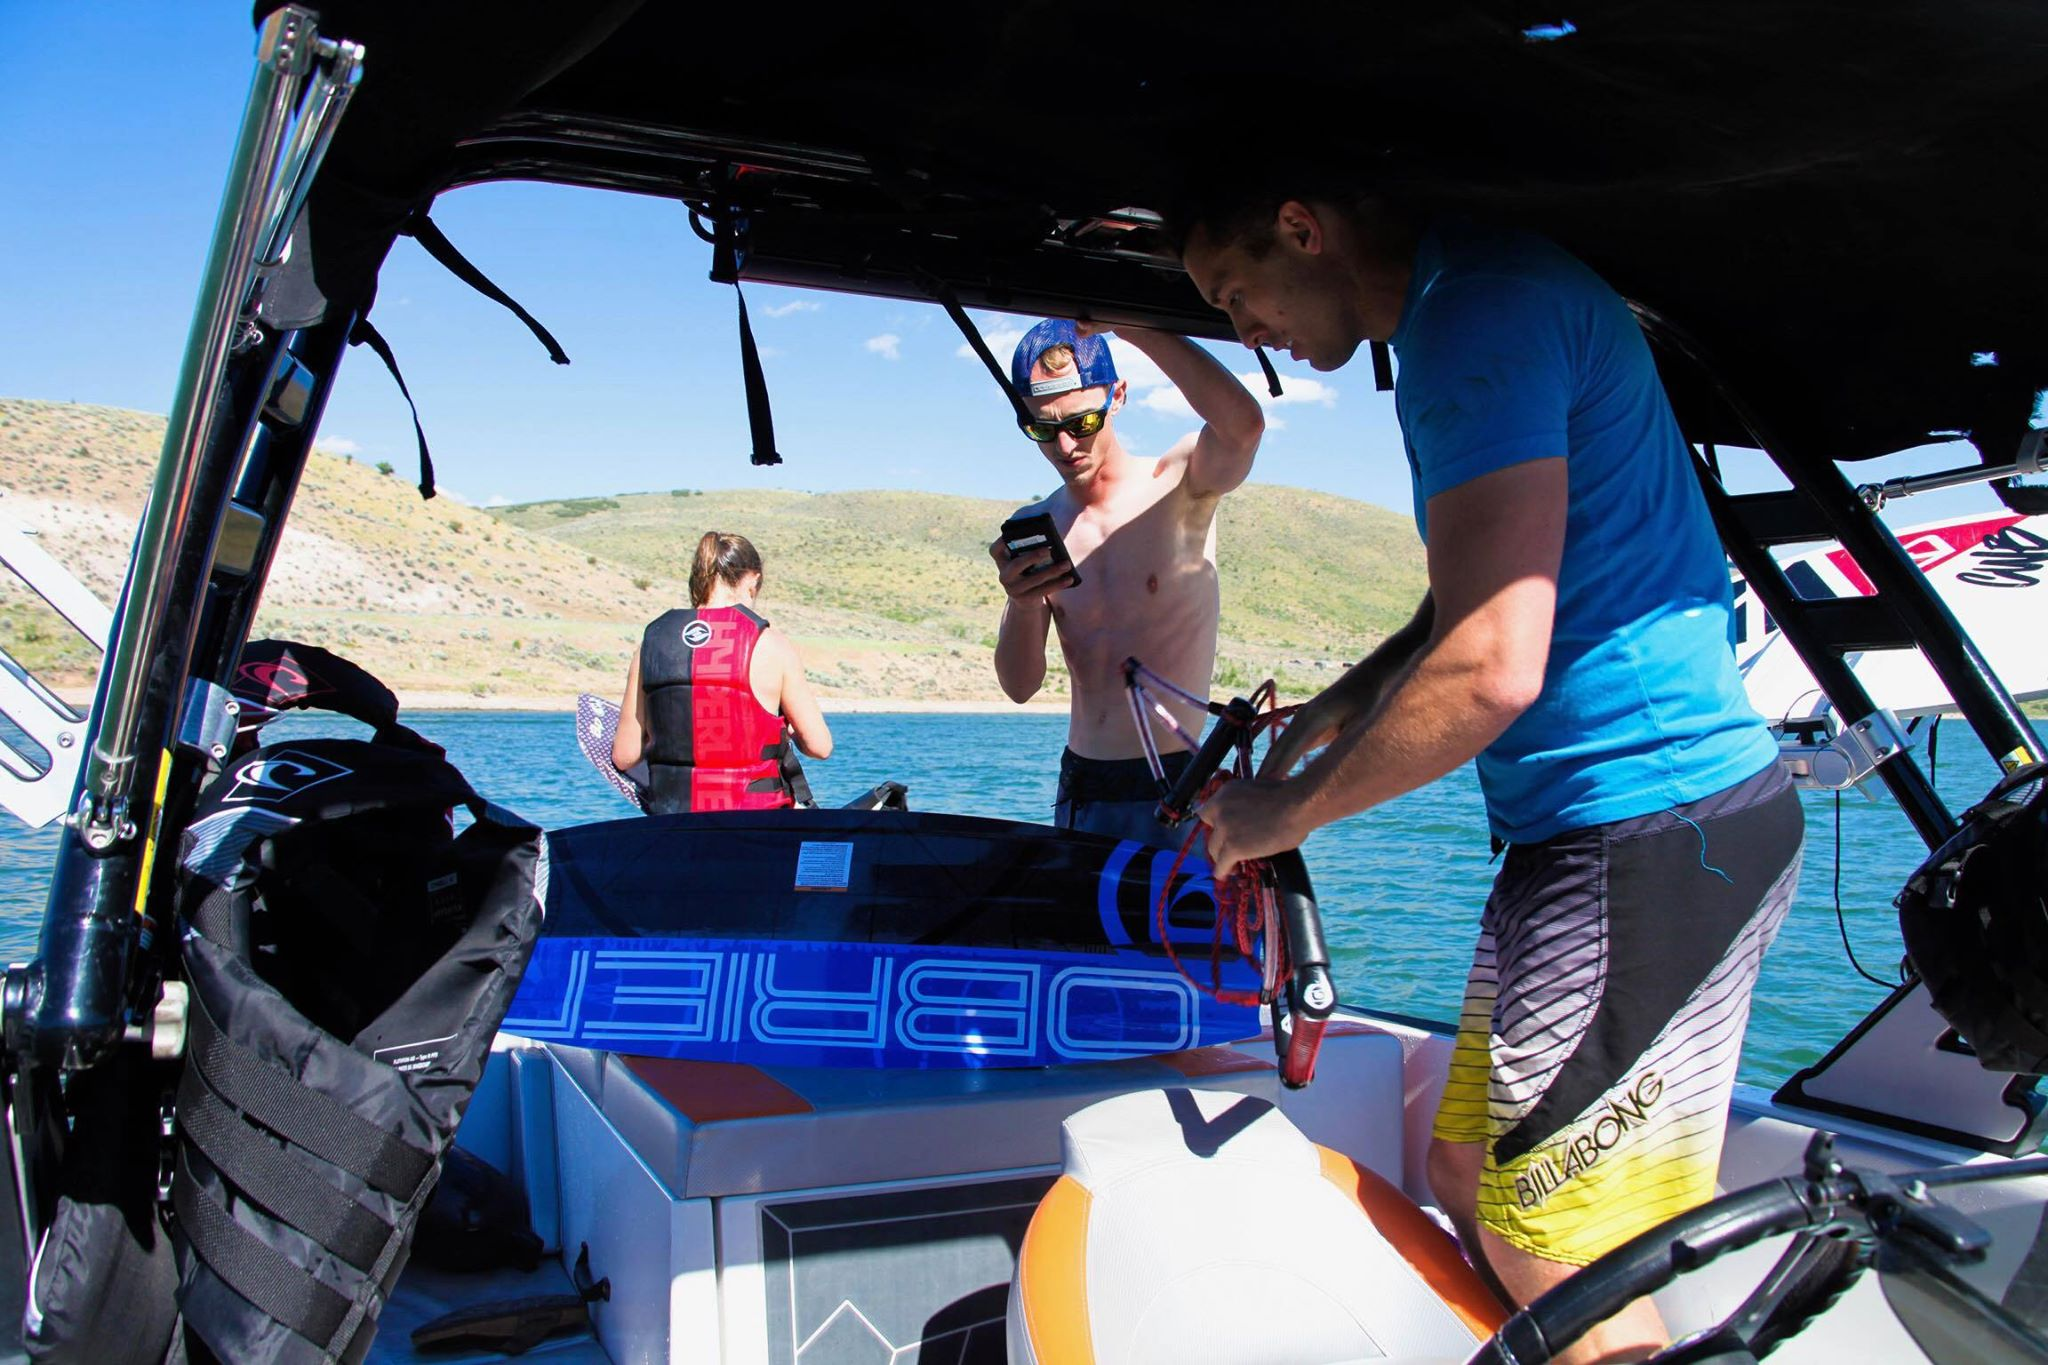 Getting ready to surf behind our boat at Bear Lake in Utah